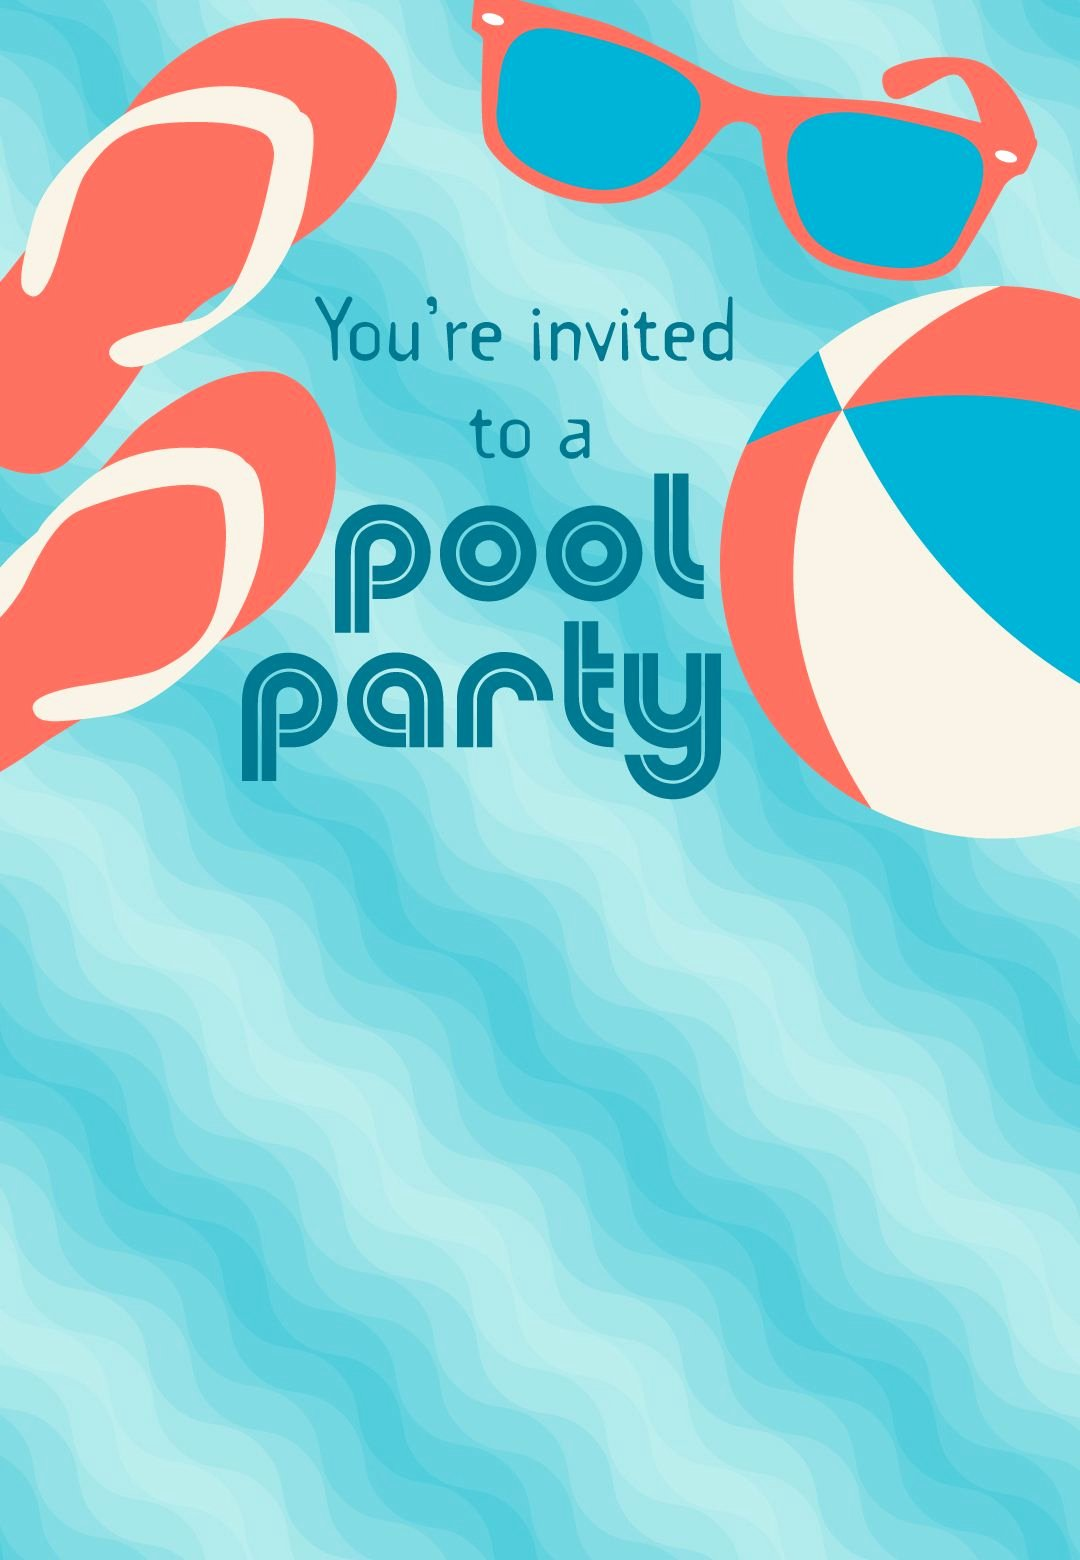 Pool Party Invitations Free Printable Best Of Free Printable Pool Party Stuff Invitation